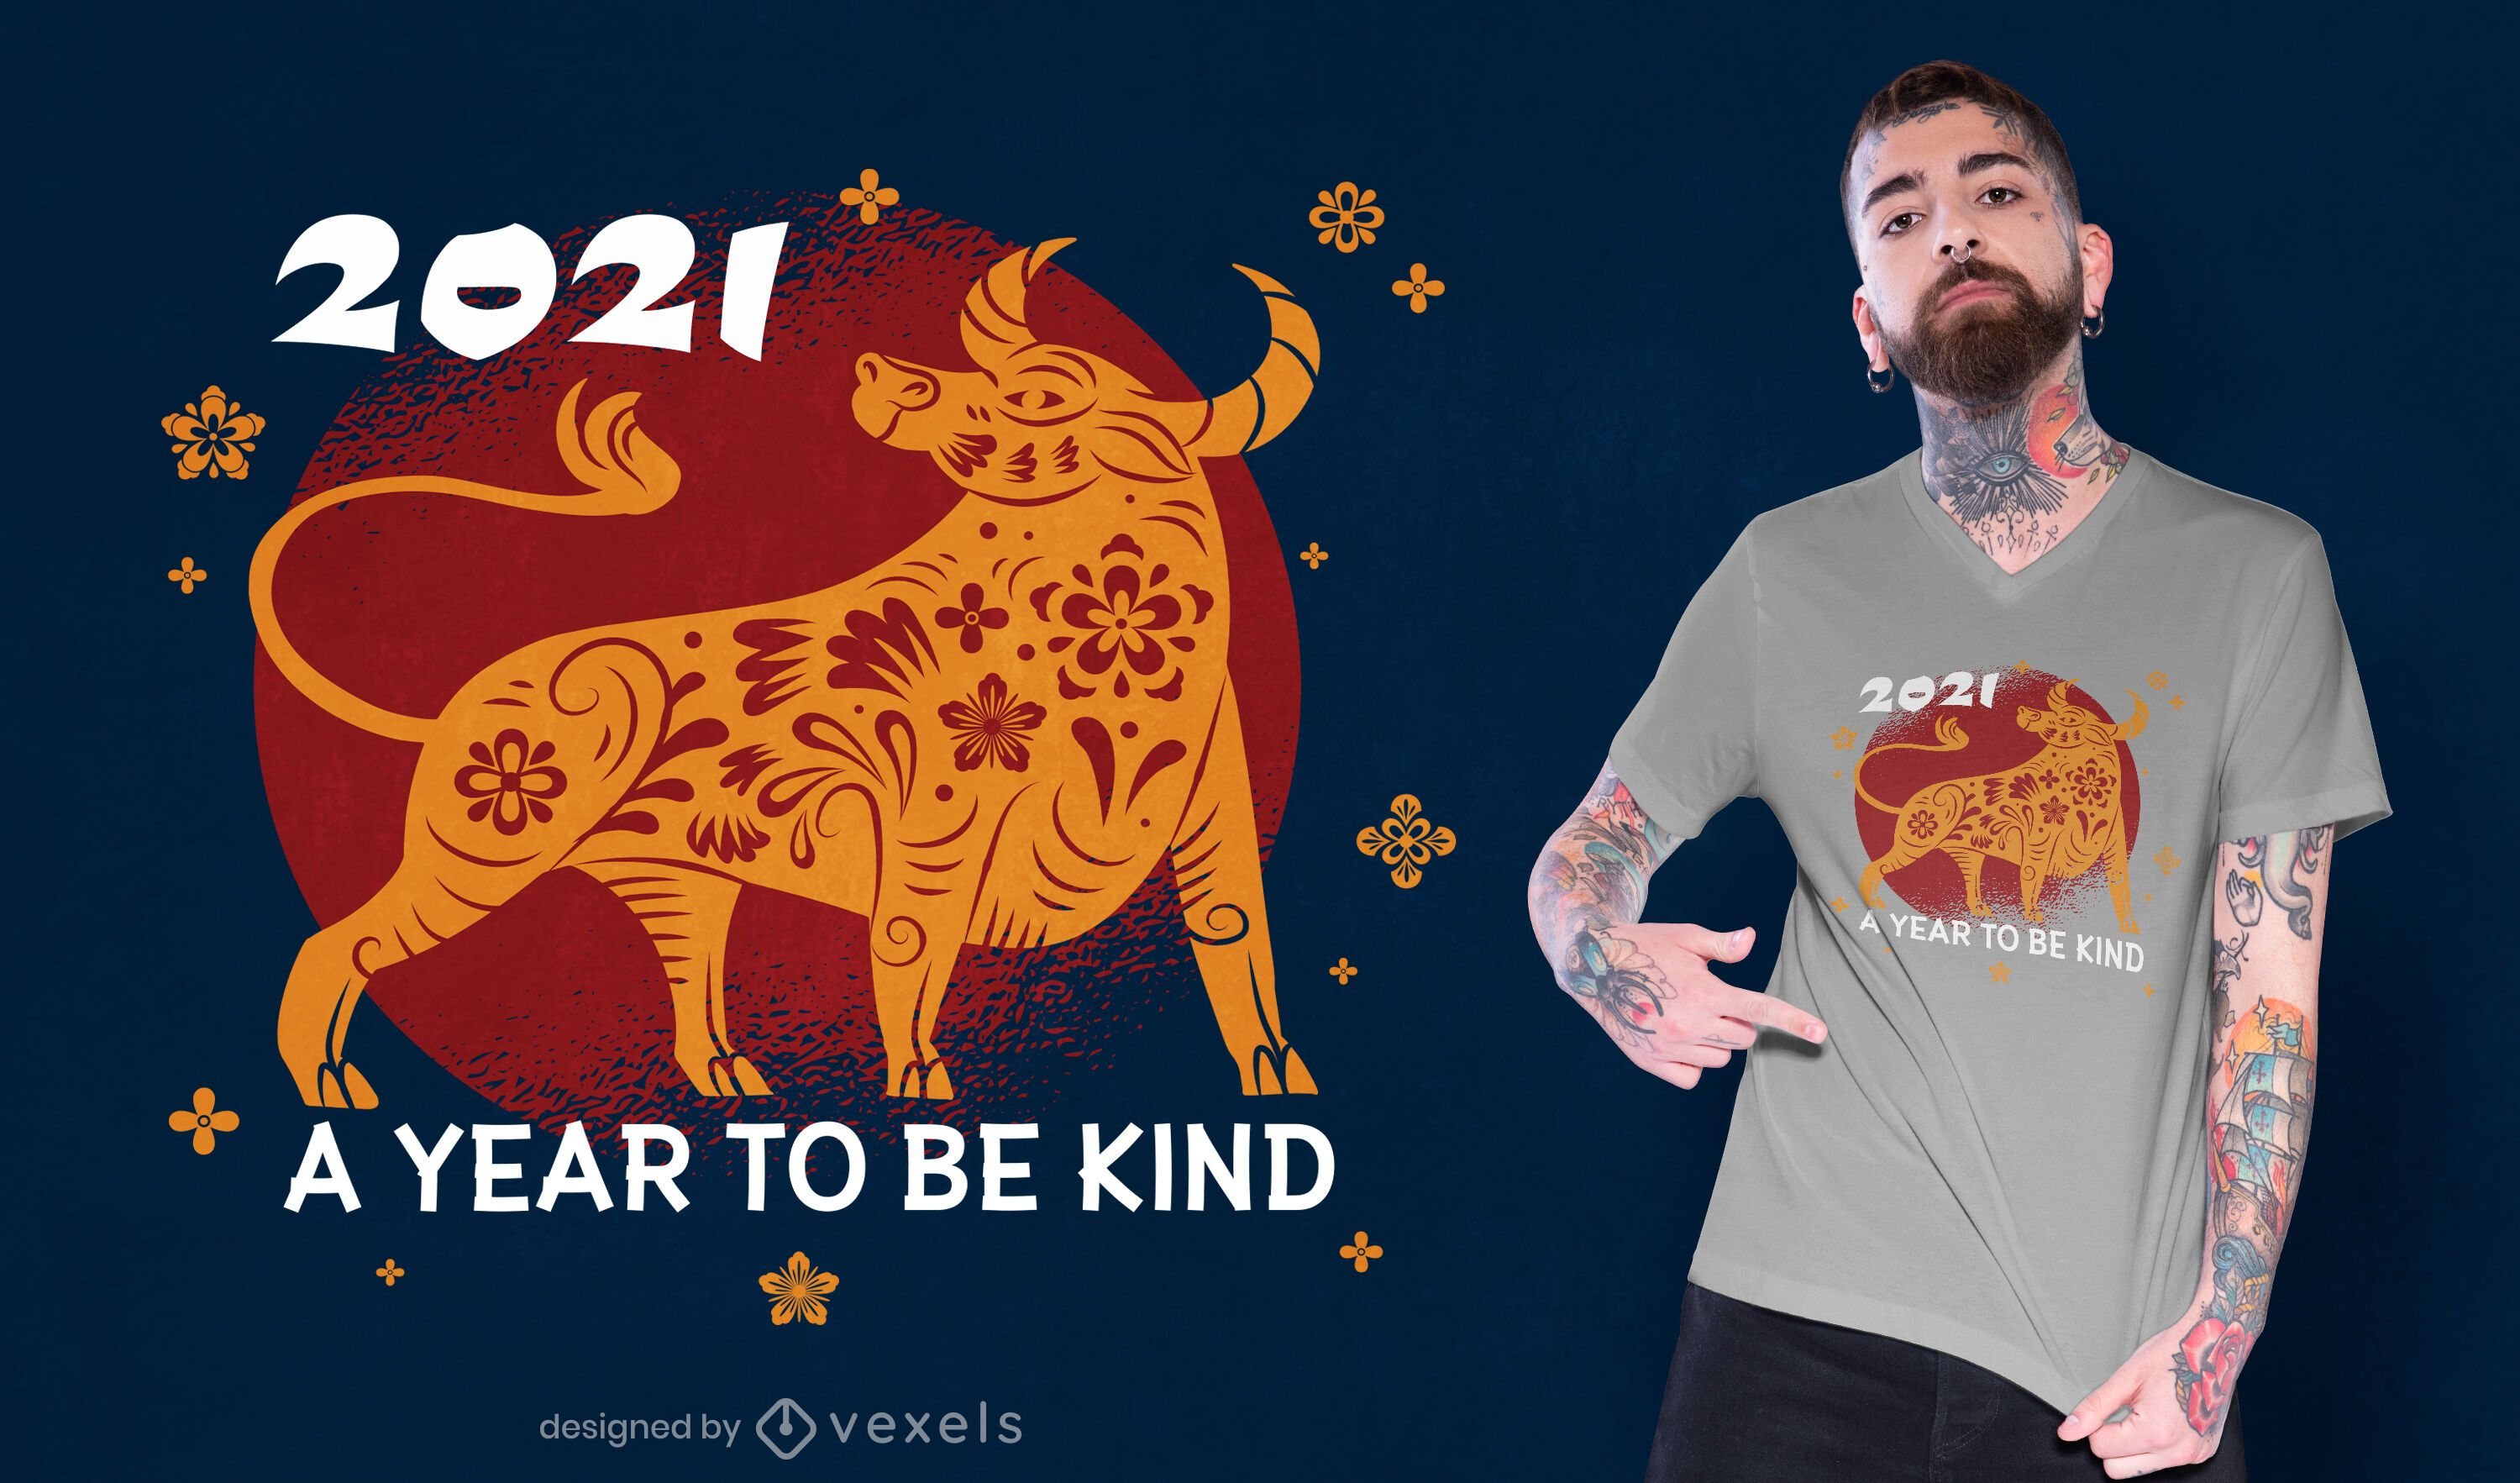 Year to be kind t-shirt design